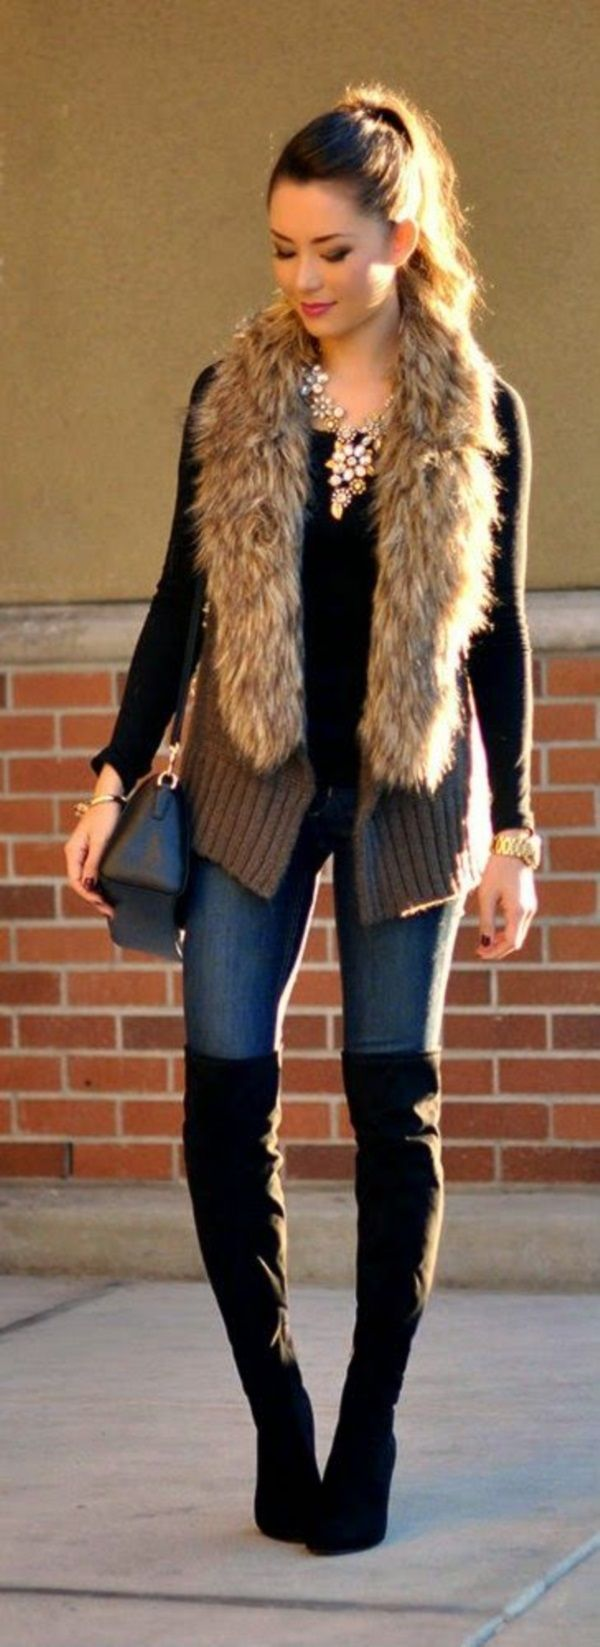 40 Lovely Faux Fur Fashion Attempts | http://stylishwife.com/2015/03/lovely-faux-fur-fashion-attempts.html